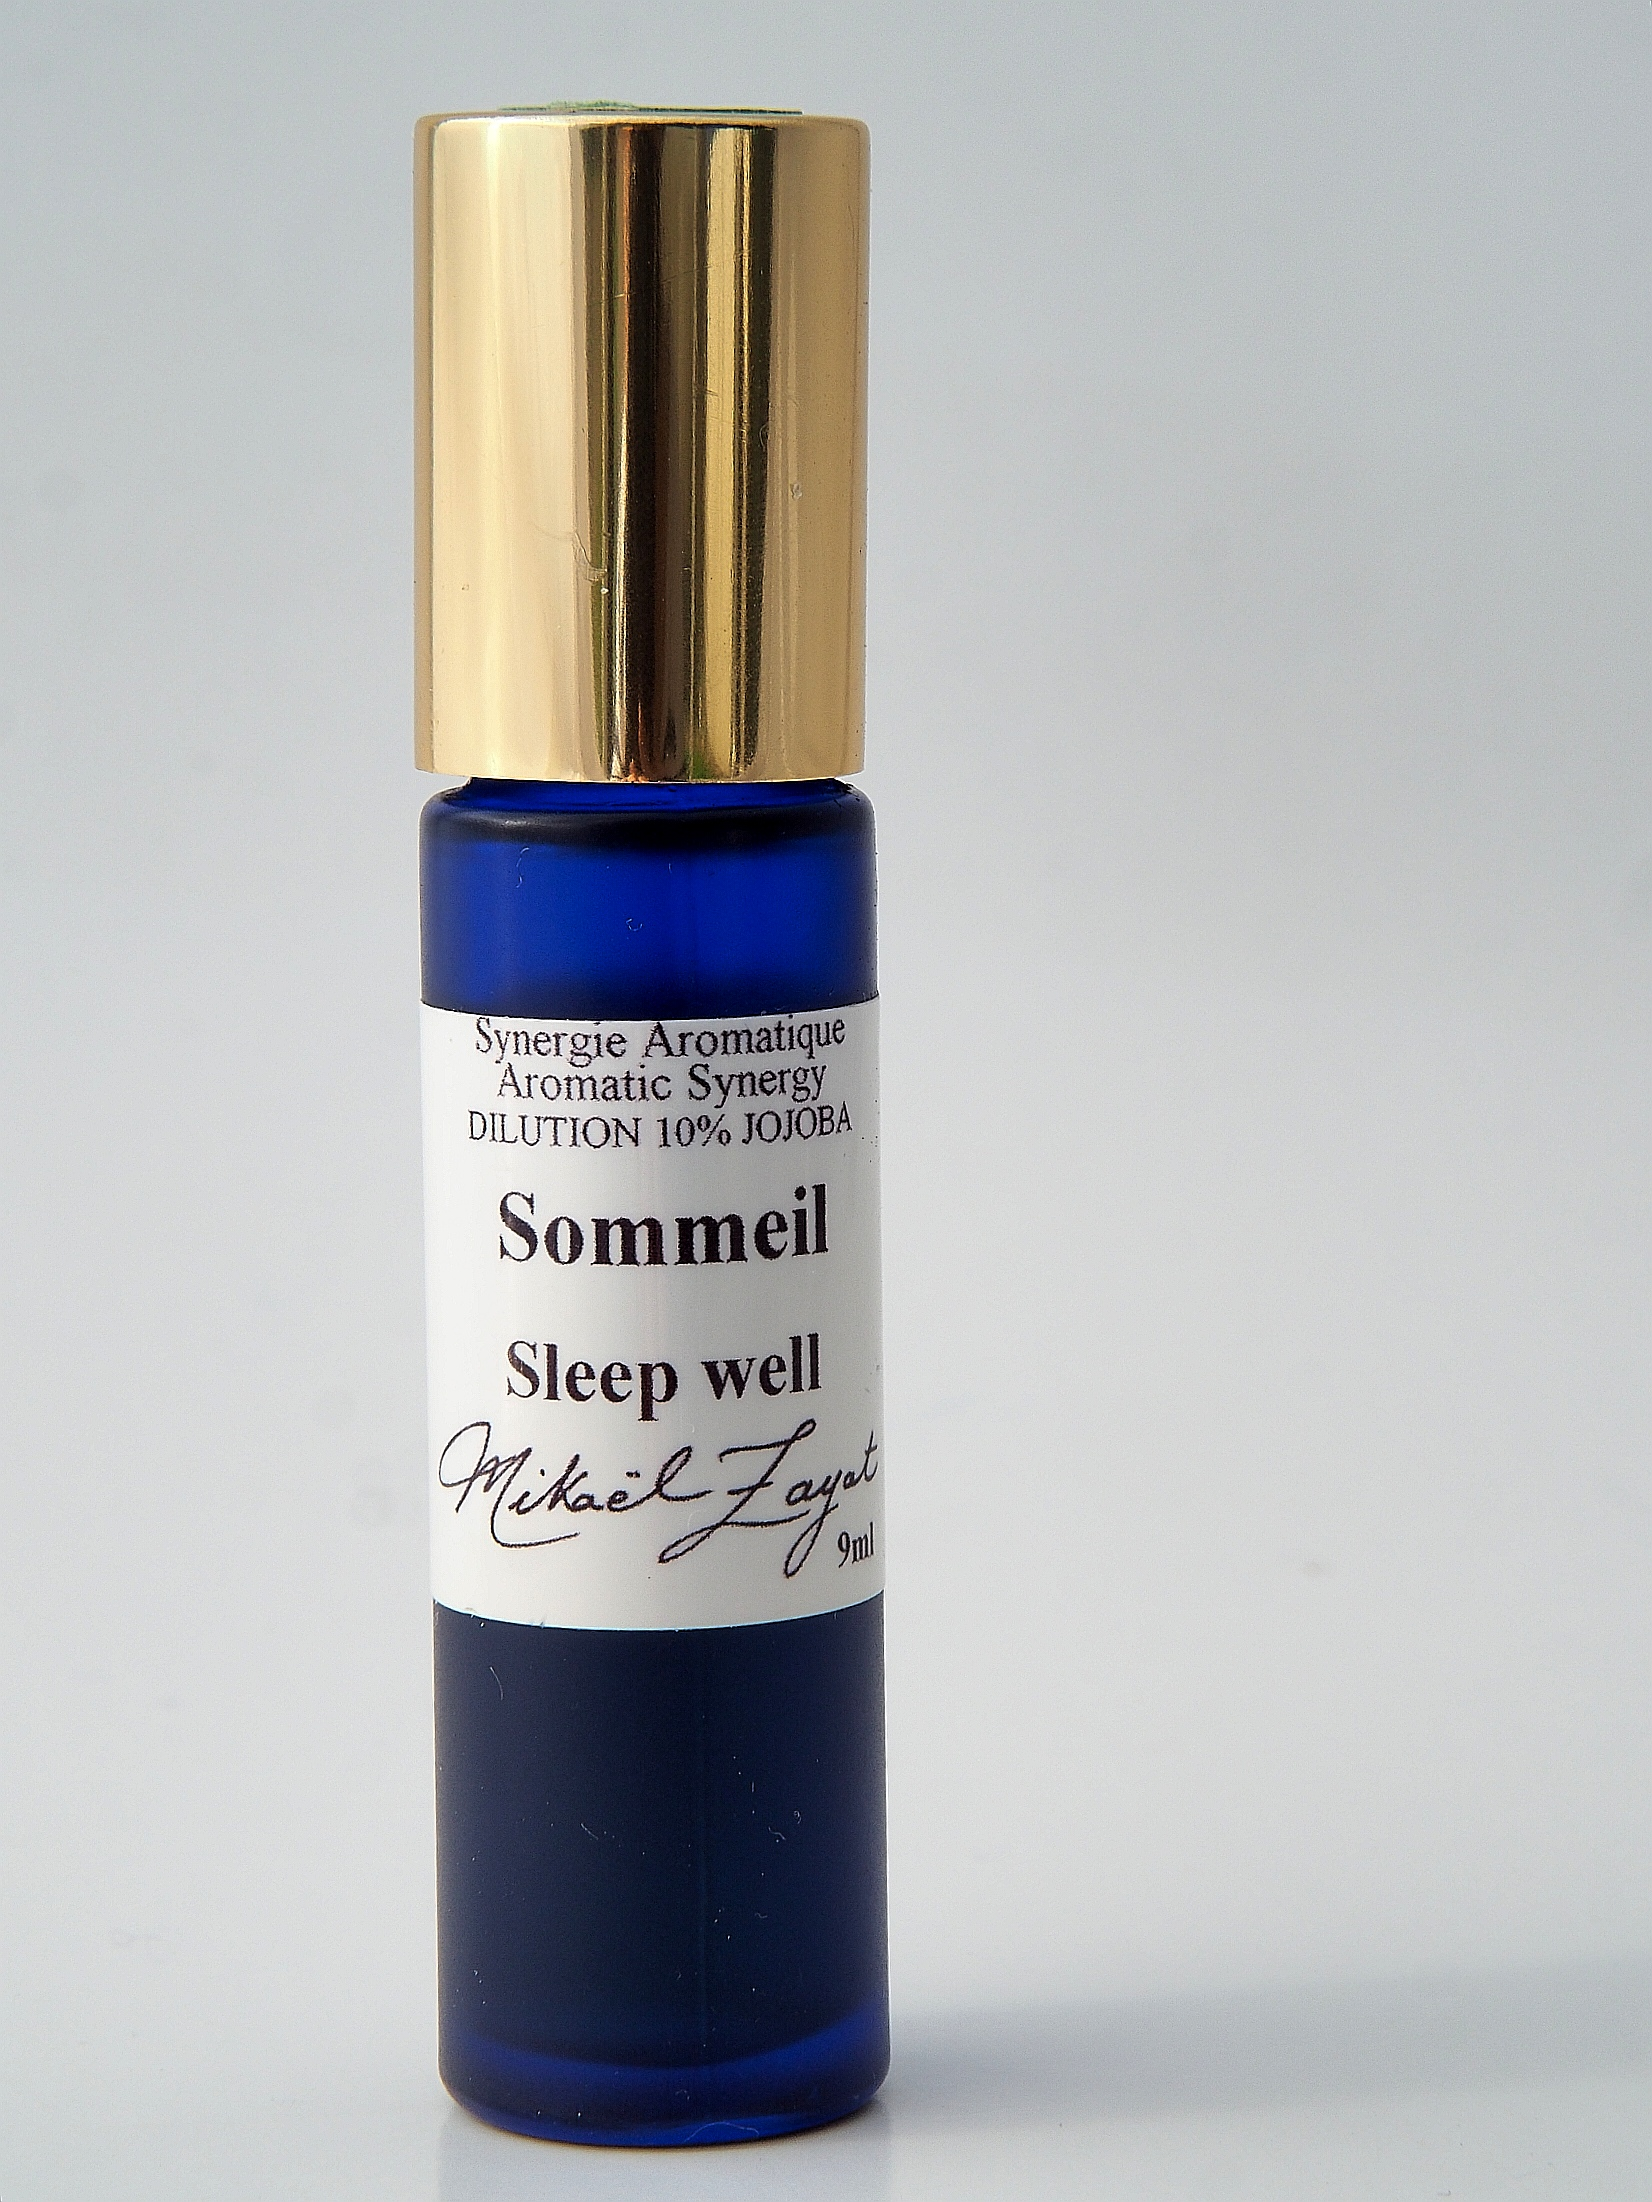 Sommeil roll-on, sleep-well roll-on